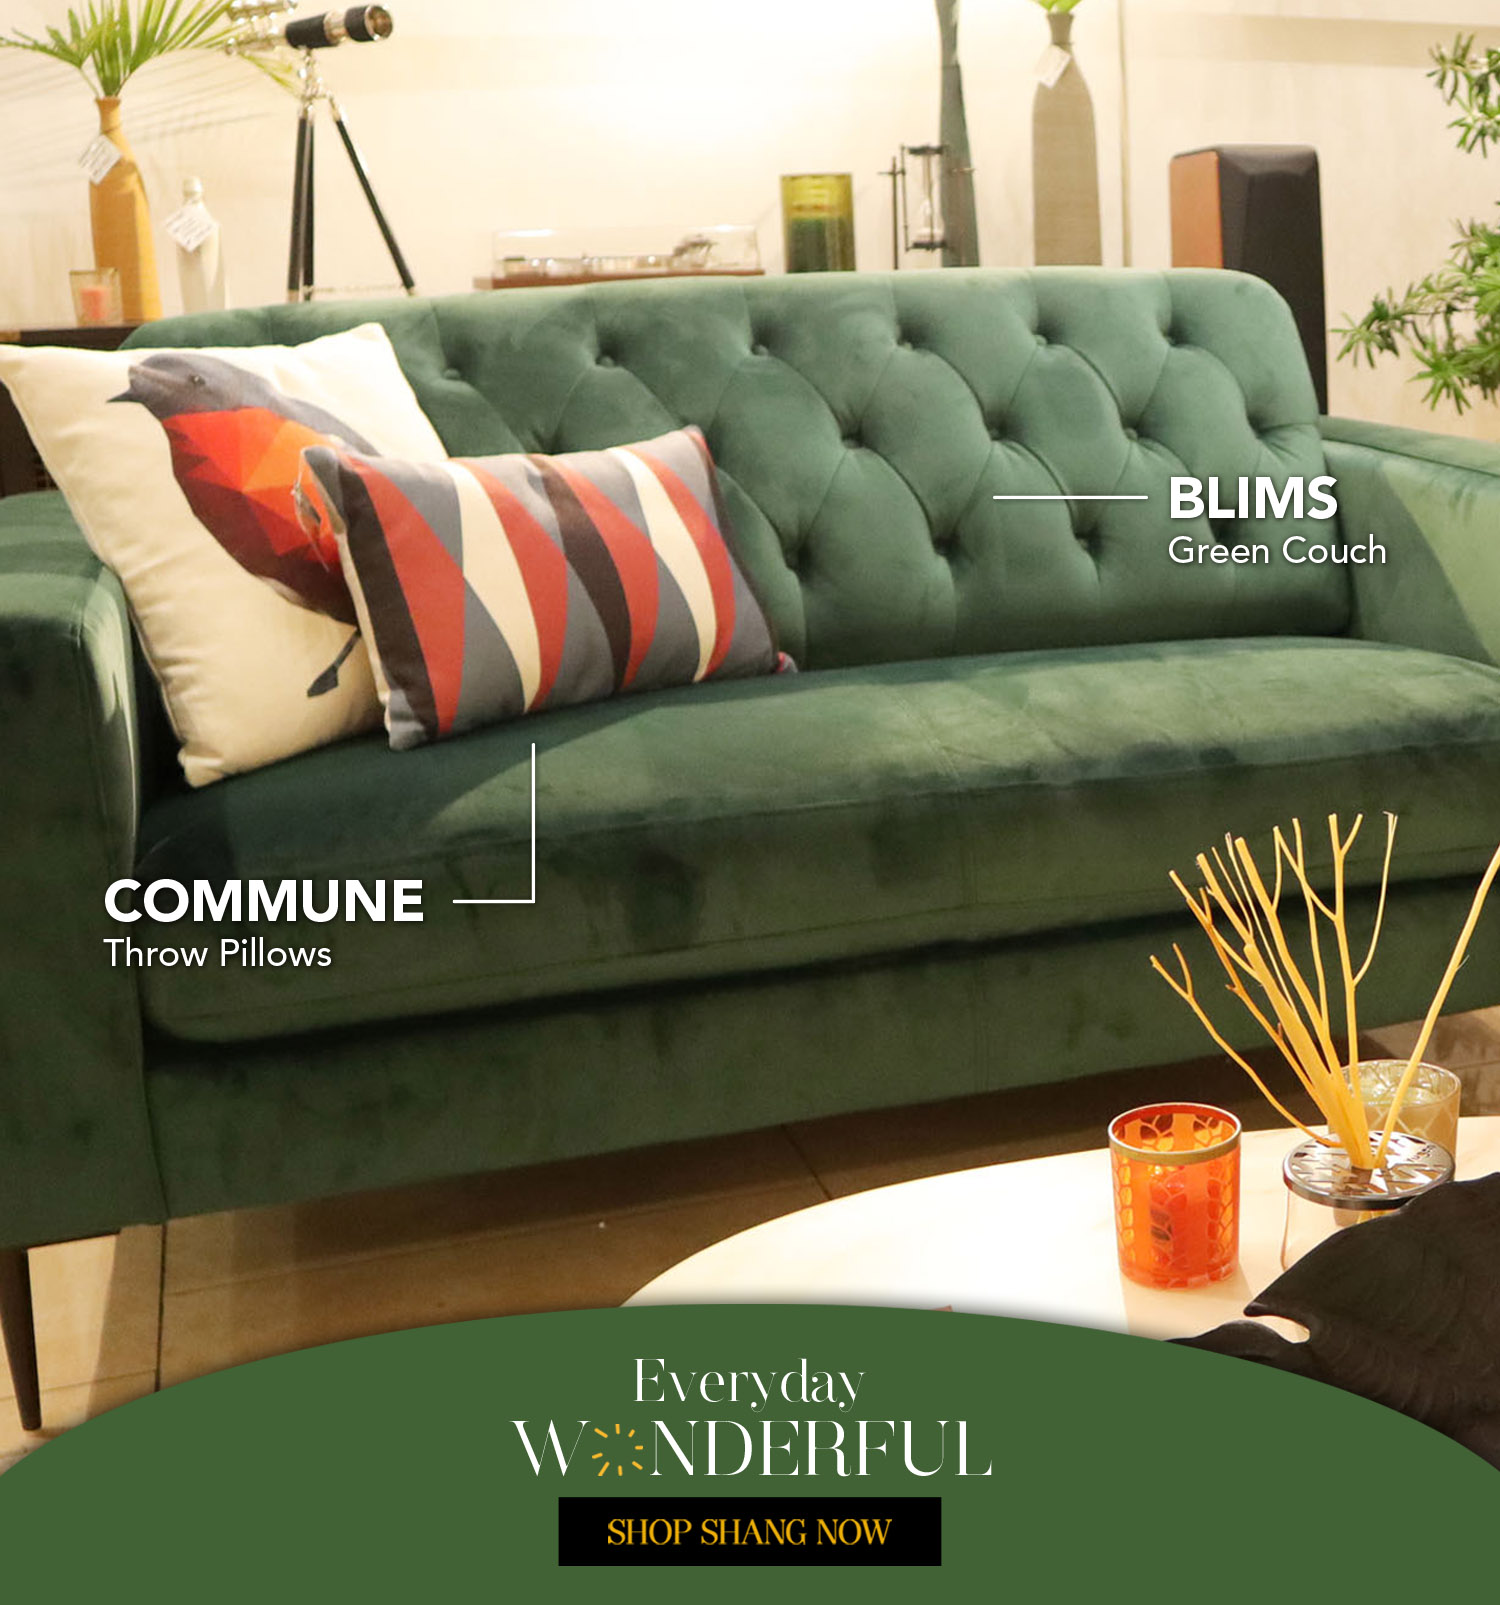 Green Couch from Blims_Throw Pillows from Commune